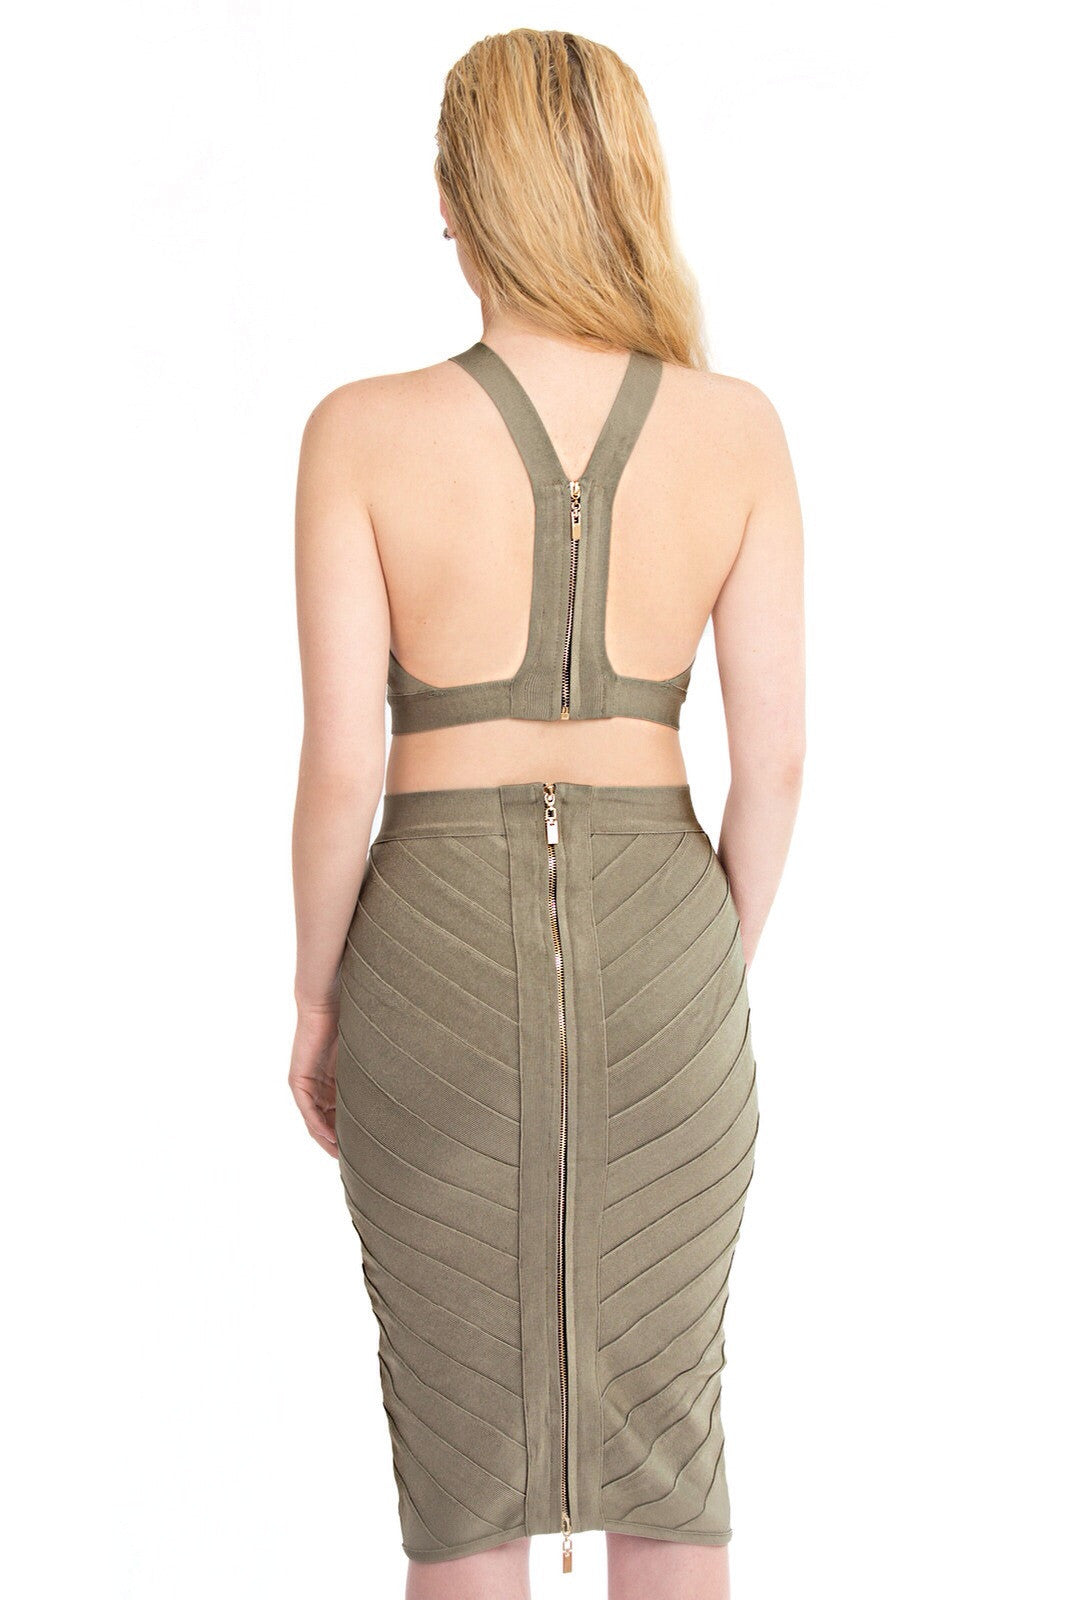 Zhané woven bandage two piece in khaki